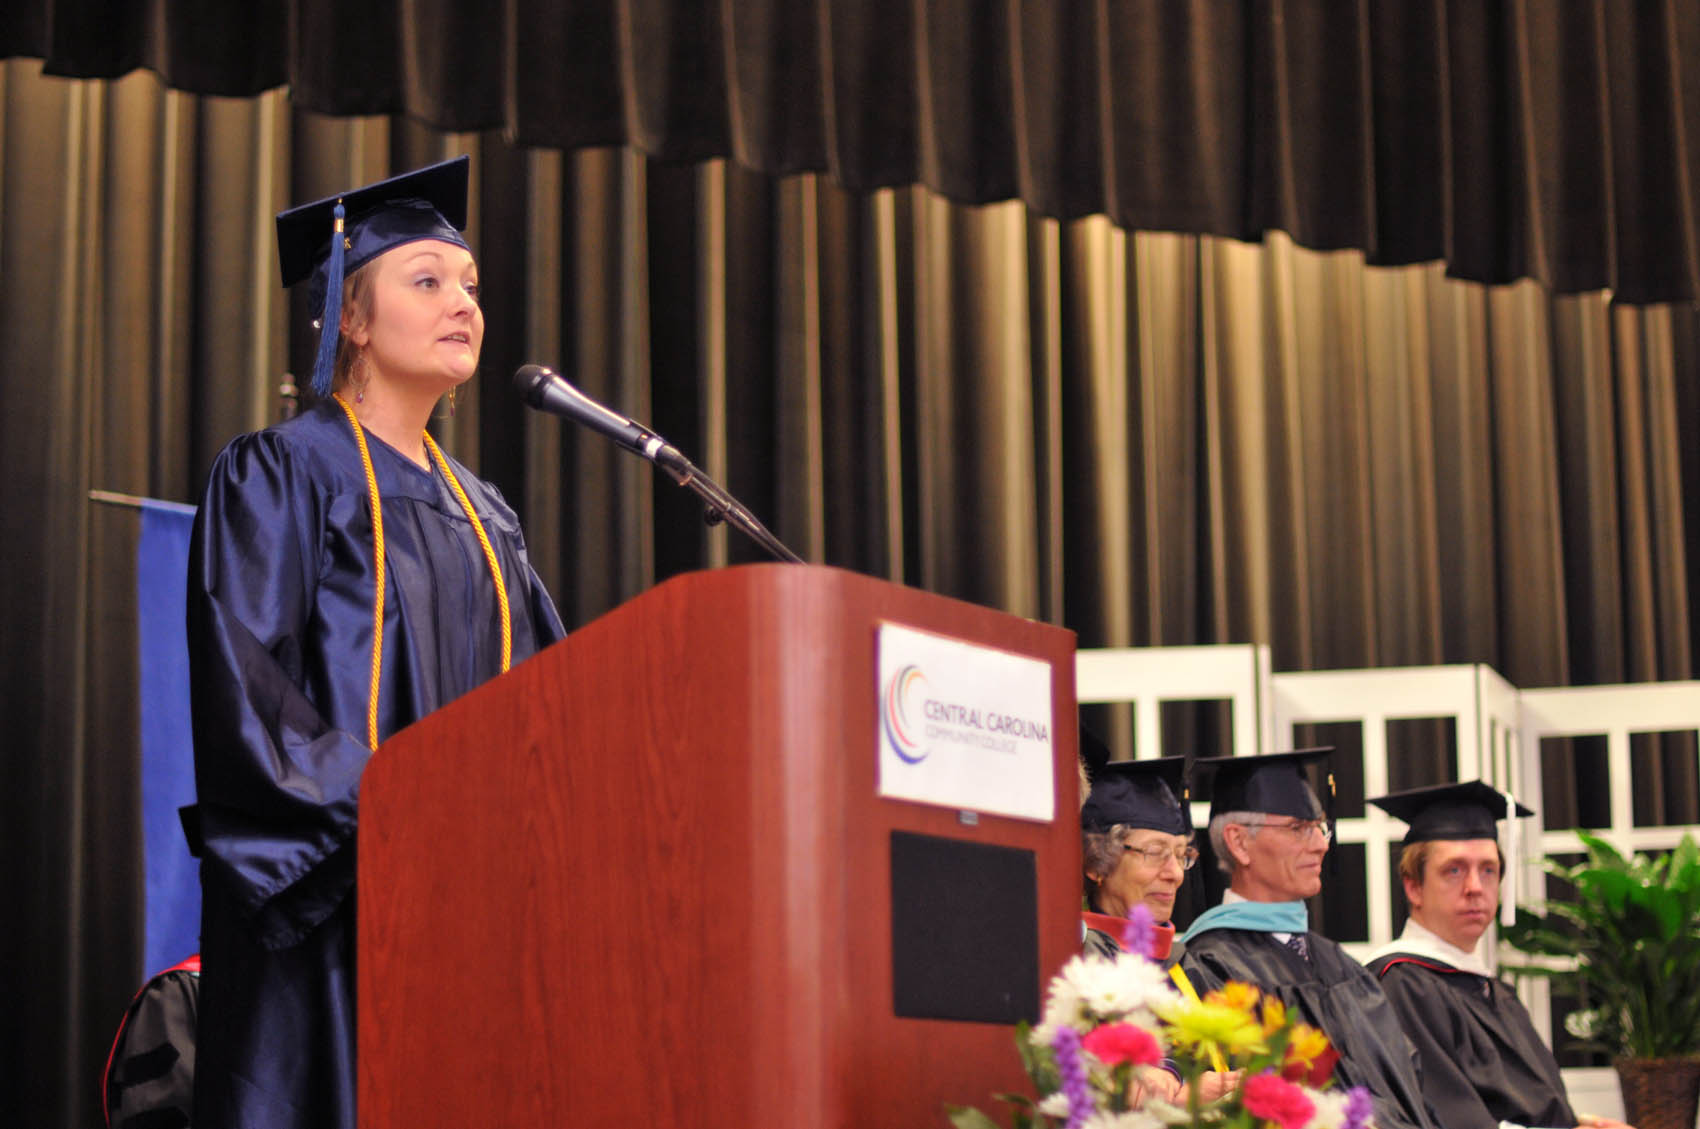 Click to enlarge,  Dani Lynn Hearn, a Chatham County graduate, was one of the commencement student speakers at Central Carolina Community College's College and Career Readiness Commencement Exercises on Feb. 1.